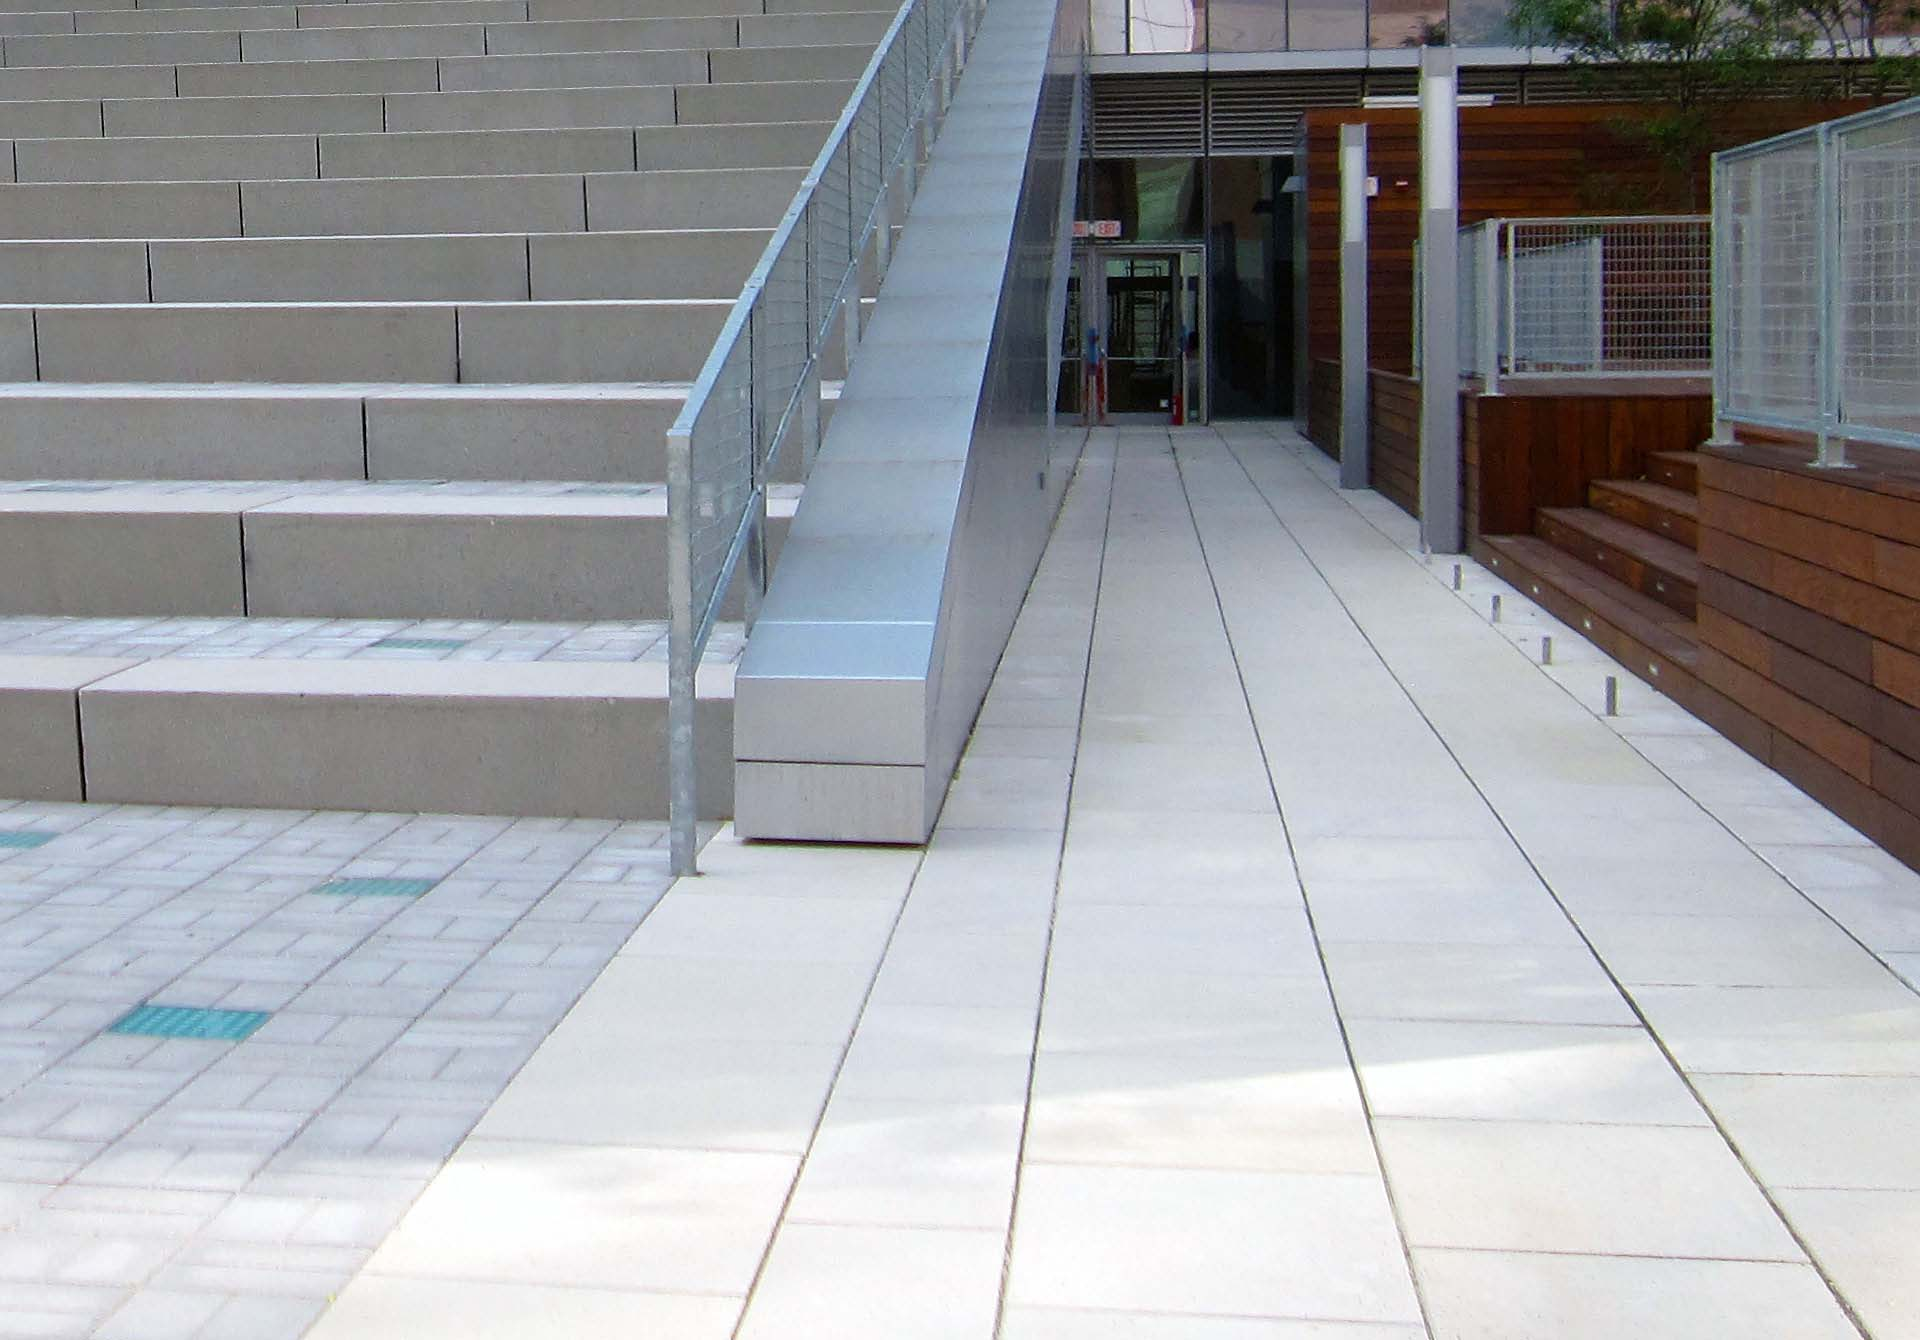 Manufacturer of Commercial Building Architectural Pavers for Entryways